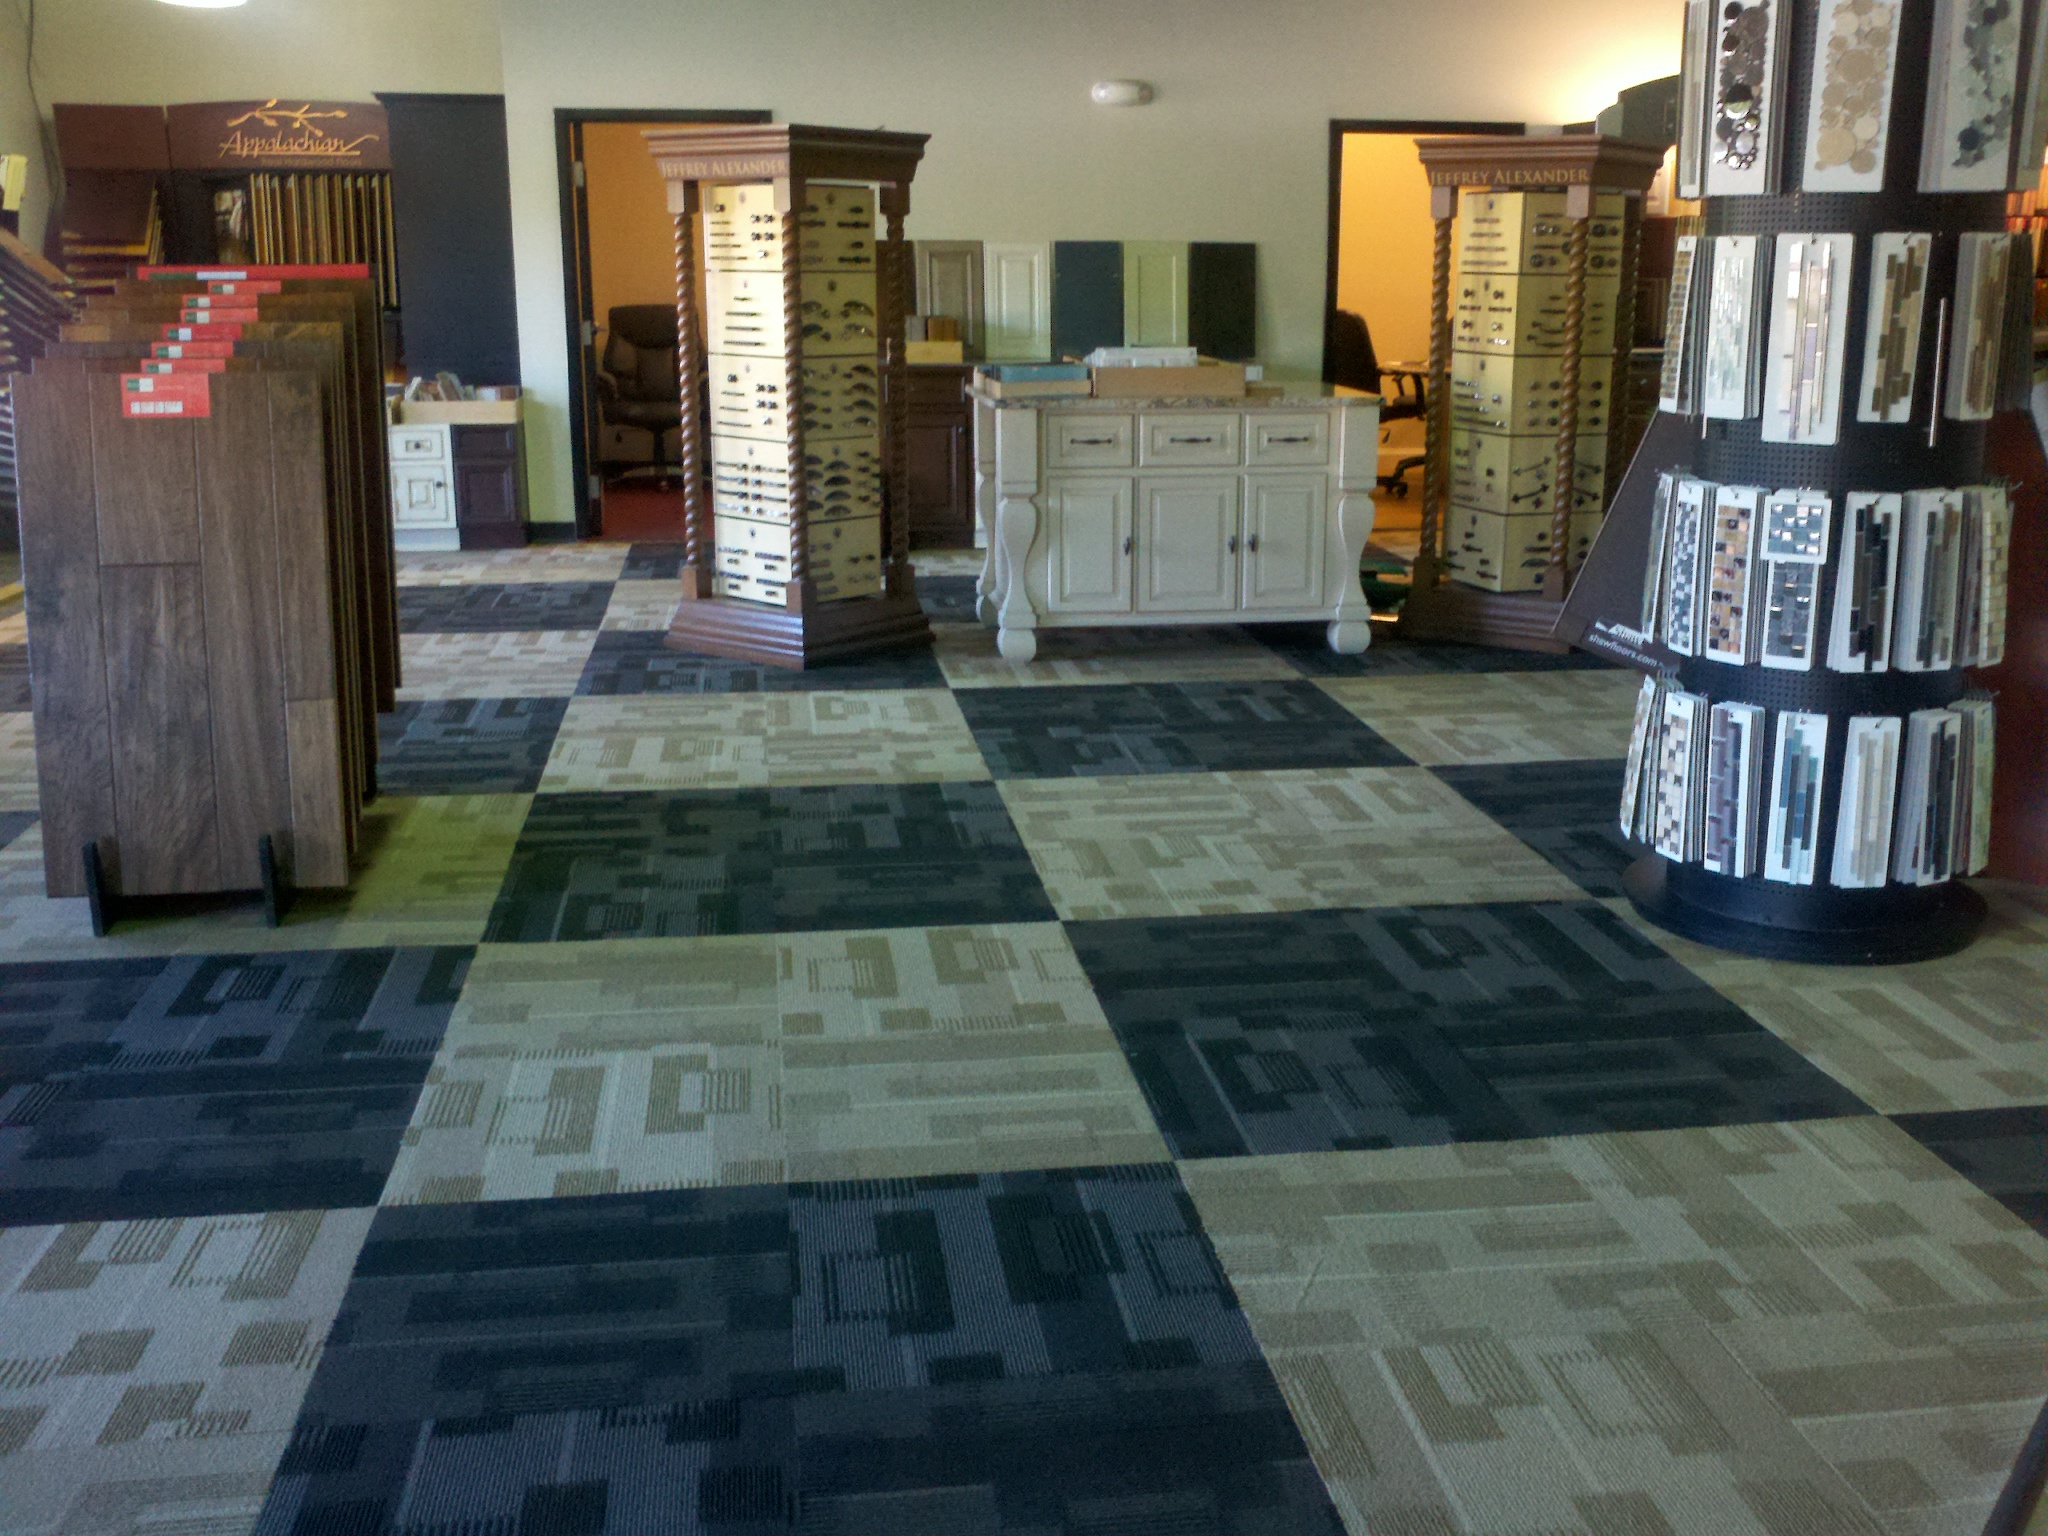 Kitchen Showroom Exclusive Kitchens And More Announces The Grand Opening Of Their